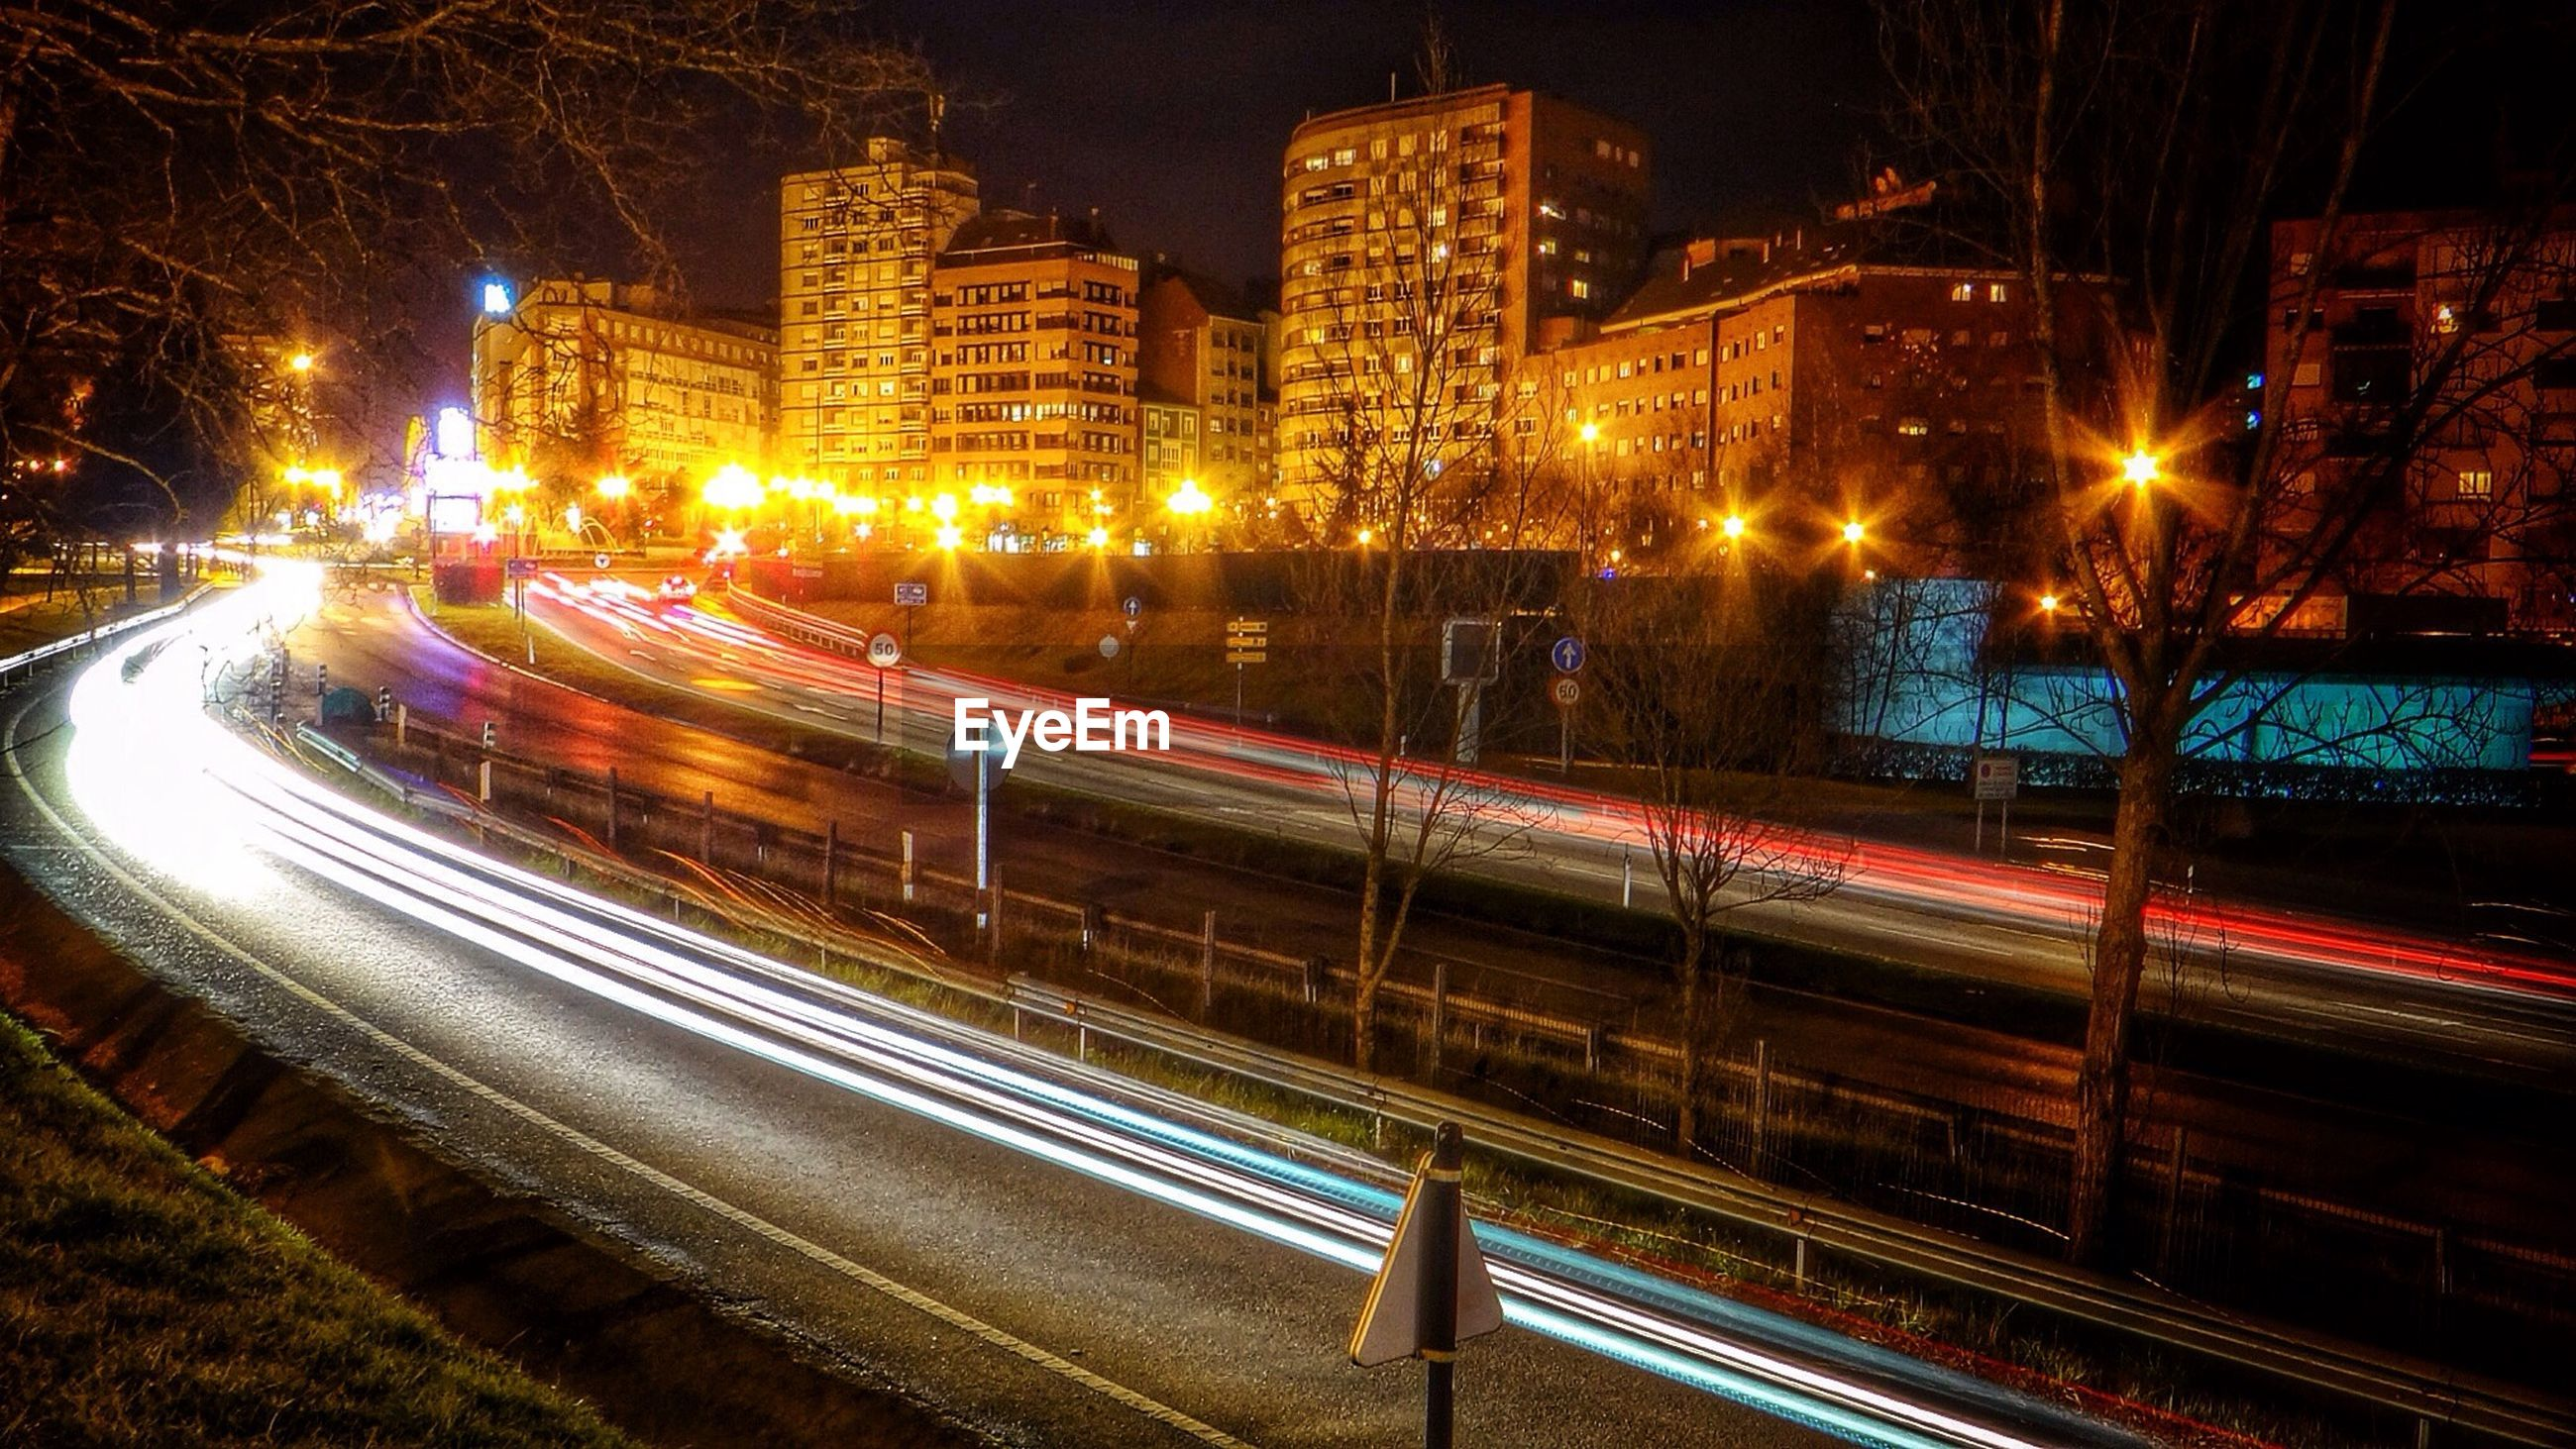 illuminated, night, light trail, transportation, long exposure, city, speed, motion, street light, building exterior, road, street, traffic, high angle view, blurred motion, architecture, built structure, city life, on the move, city street